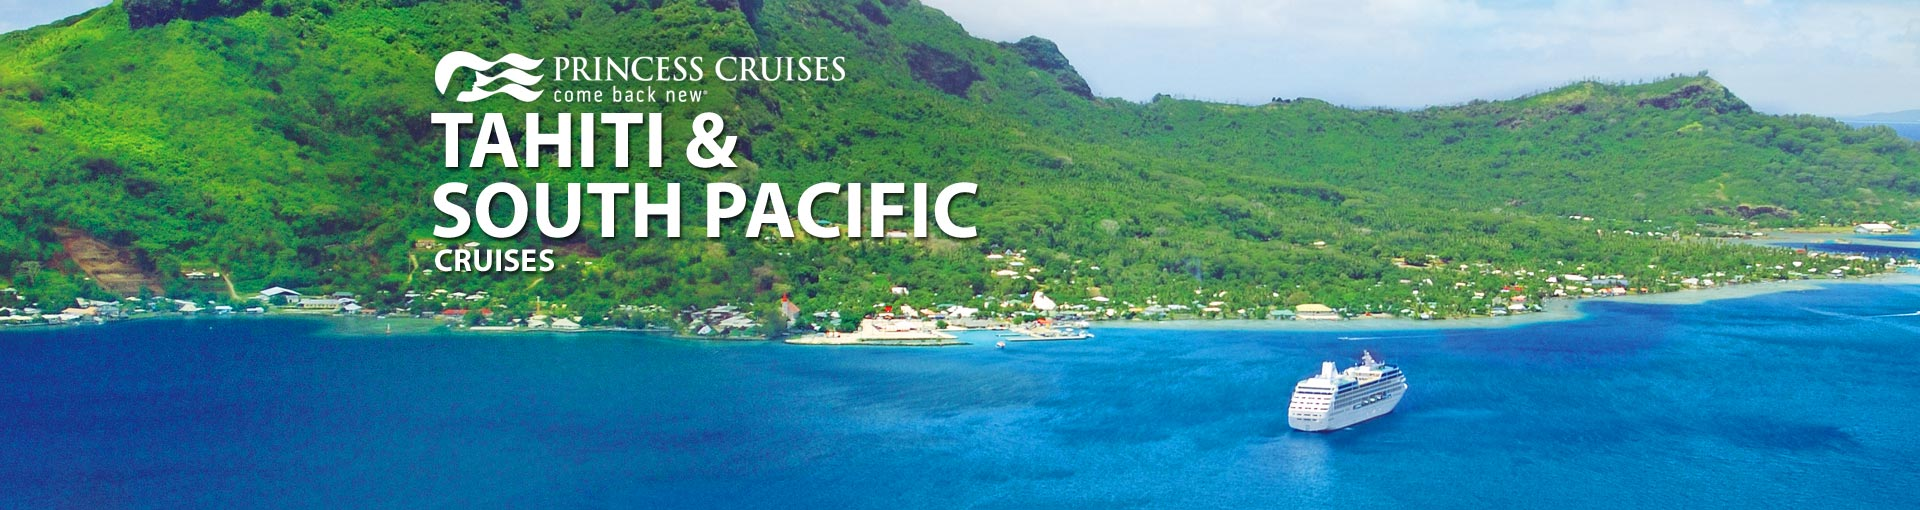 Princess South Pacific Cruises And Tahiti Princess - Cruise to tahiti